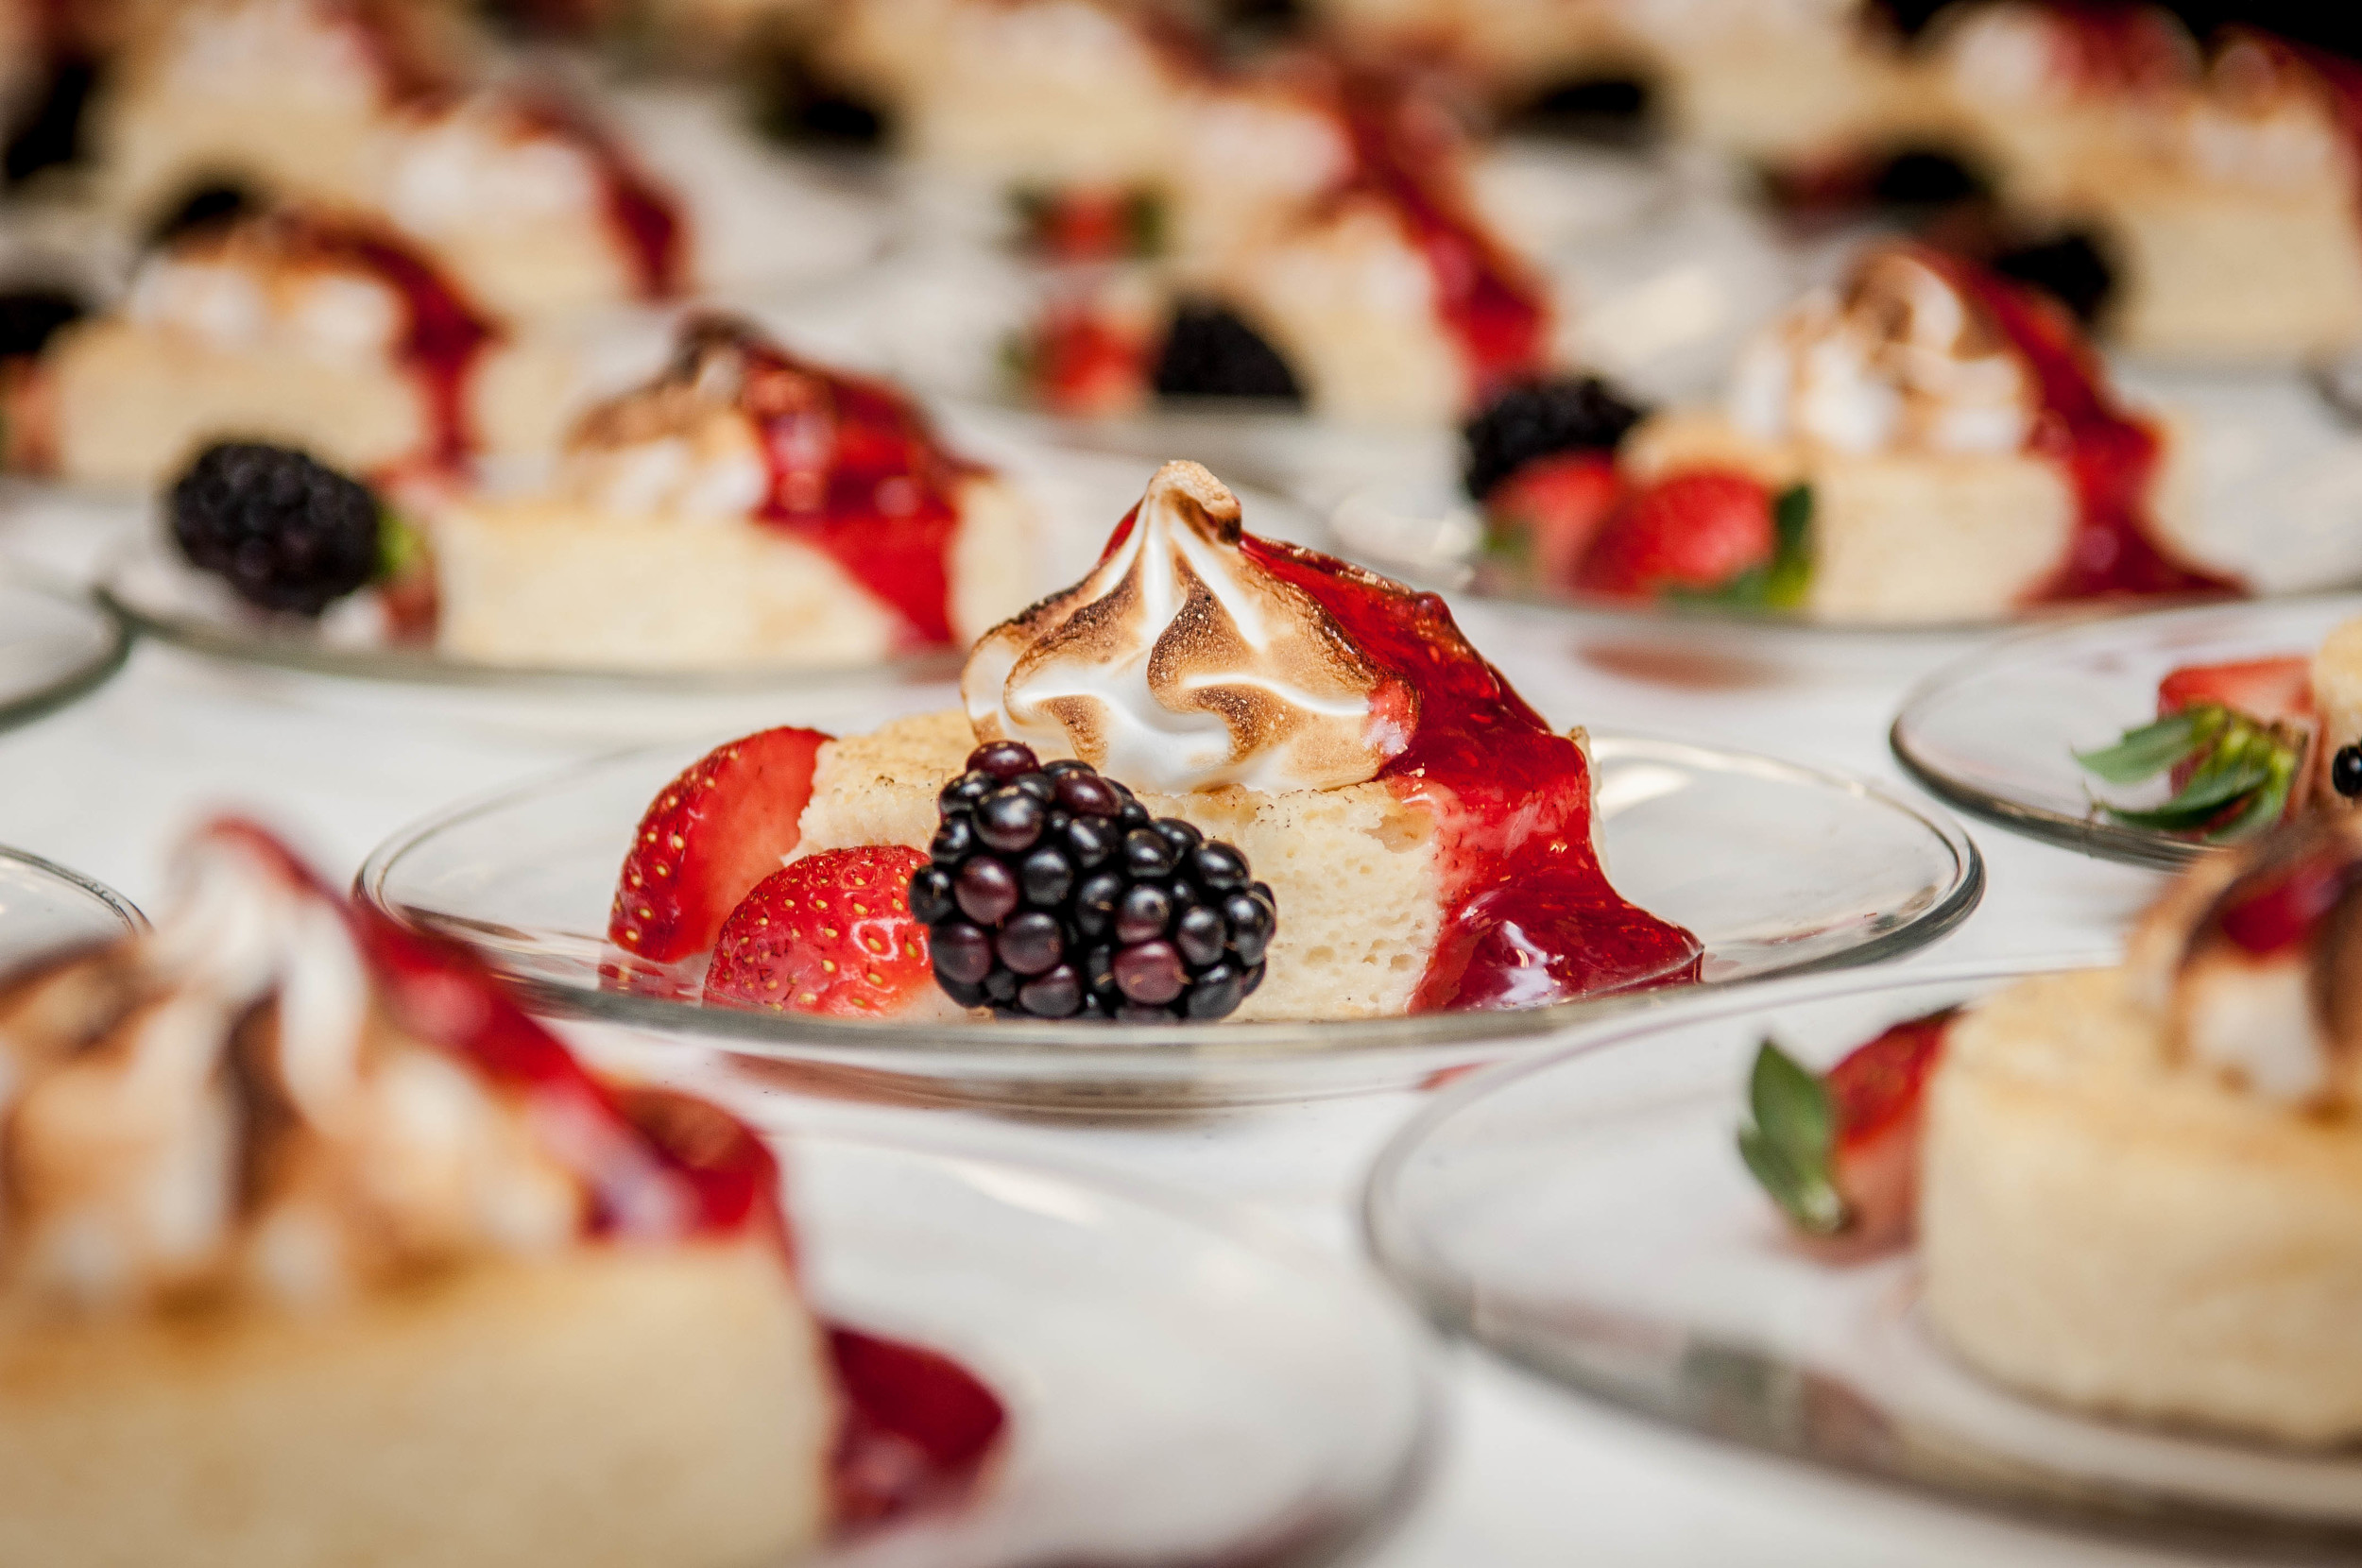 tres leches cake with fresh berries